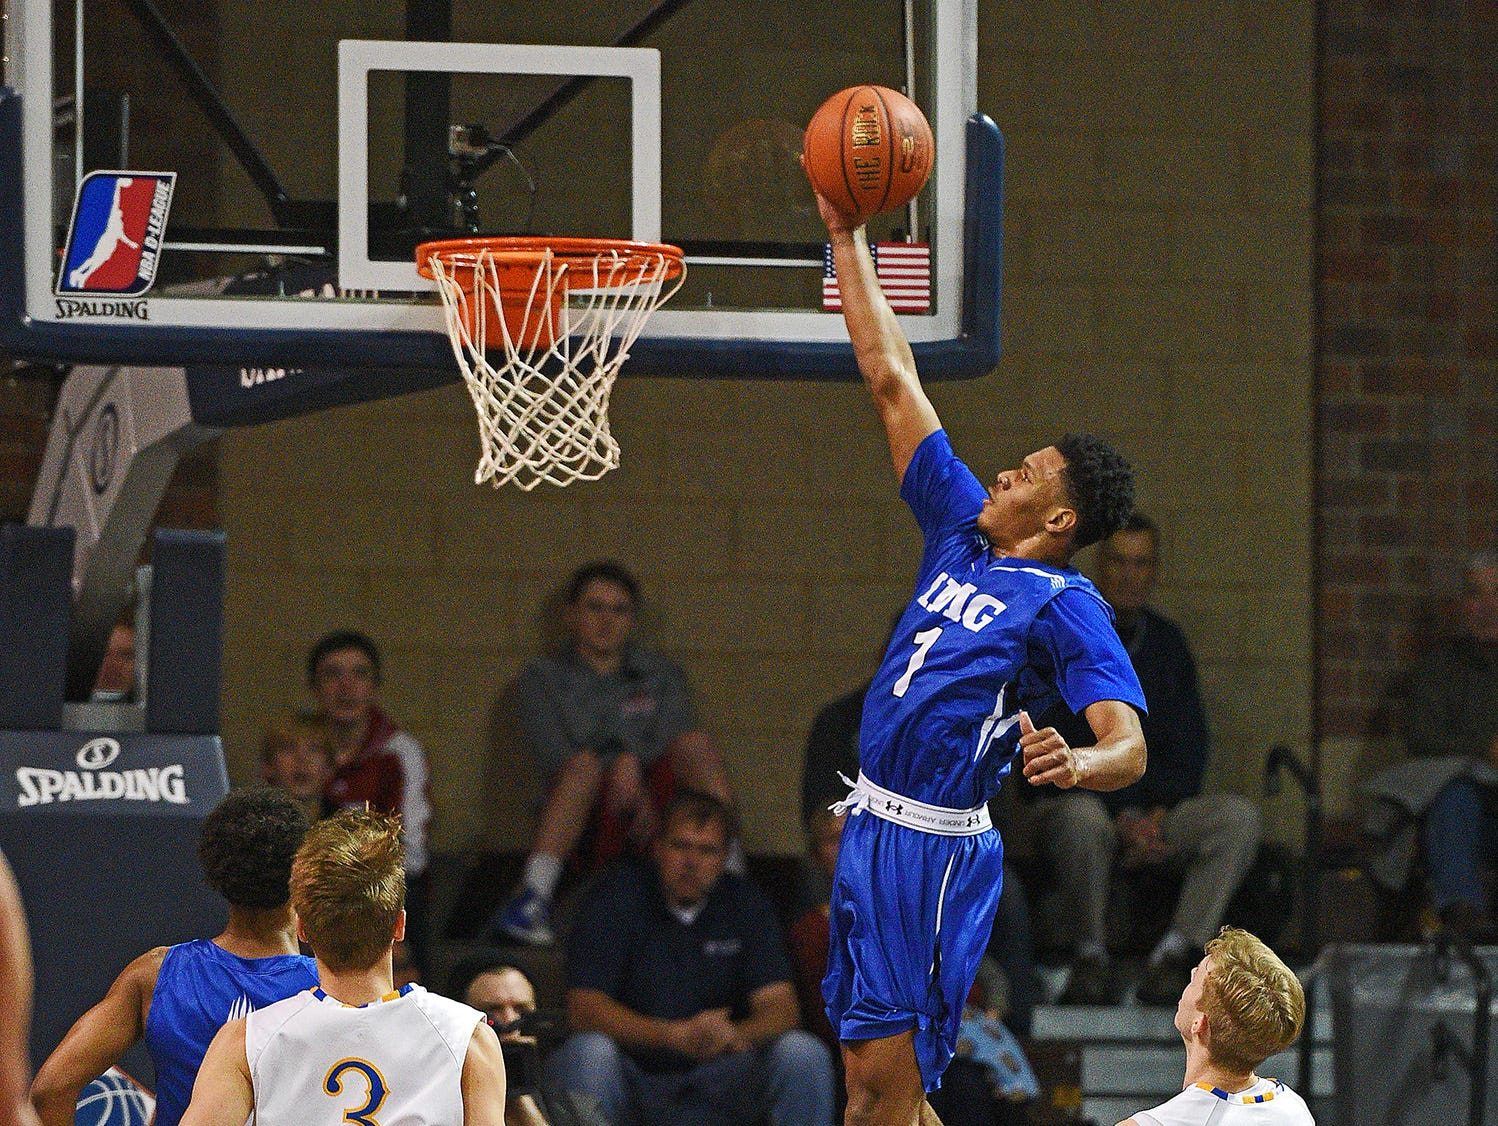 IMG Academy's Trevon Duval (1) goes up for a shot during the Gary Munsen Tournament Championship game against O'Gorman Friday, Dec. 30, 2016, at the Sanford Pentagon in Sioux Falls.